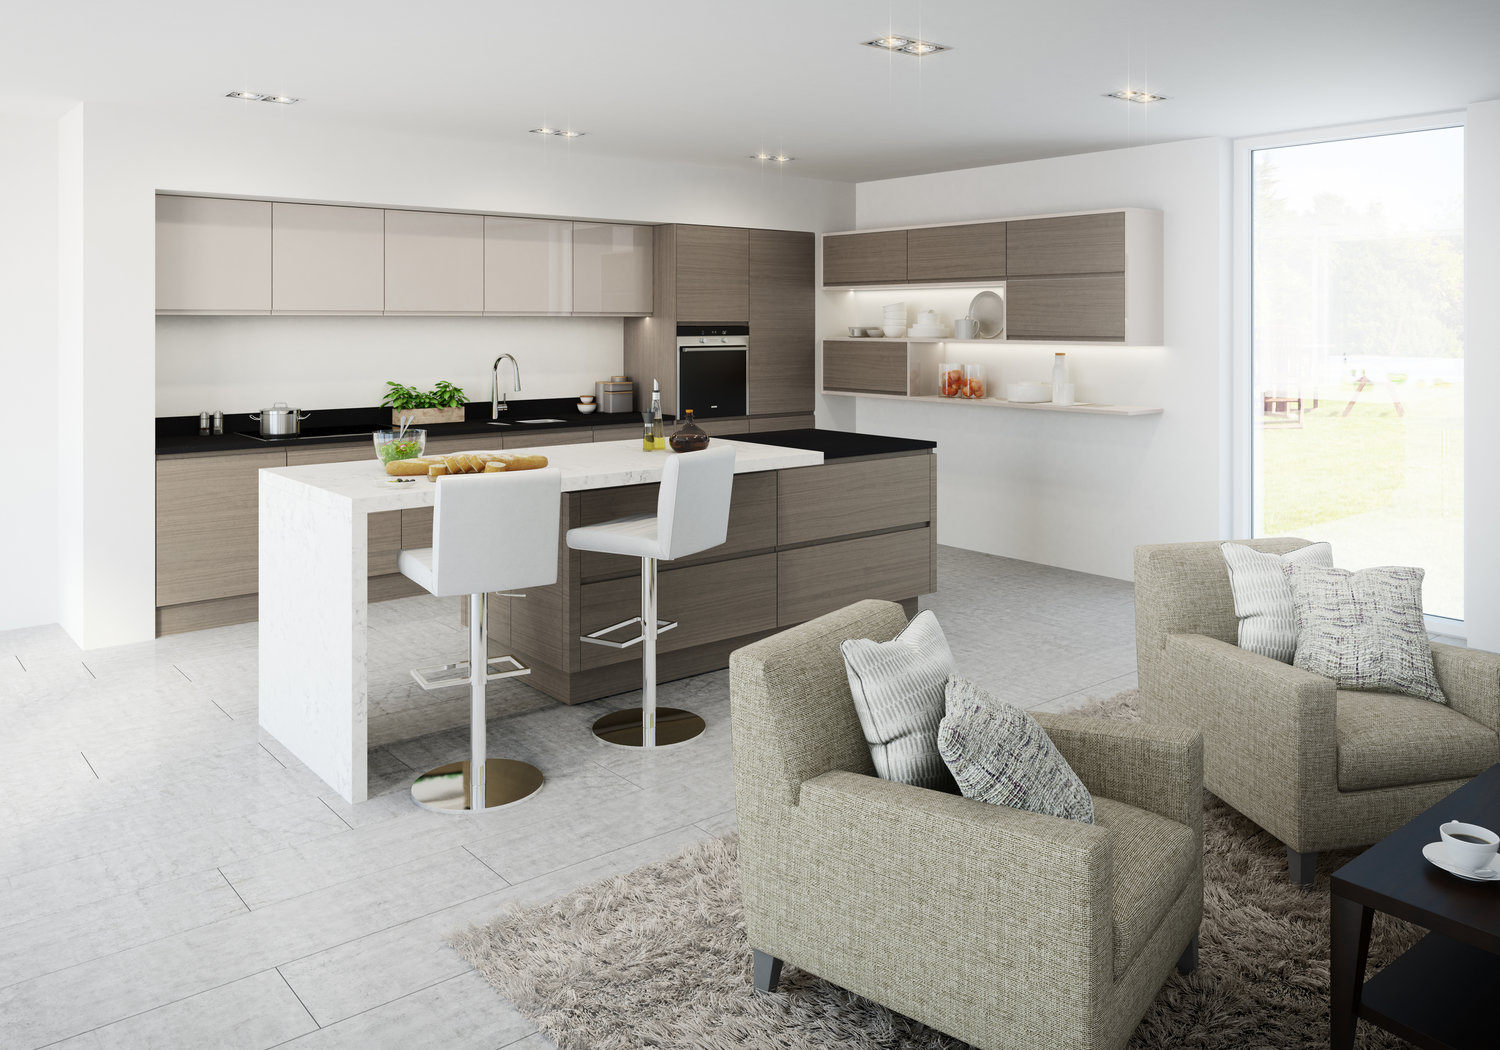 open plan living and dining can look sensational, even in less spacious kitchens.